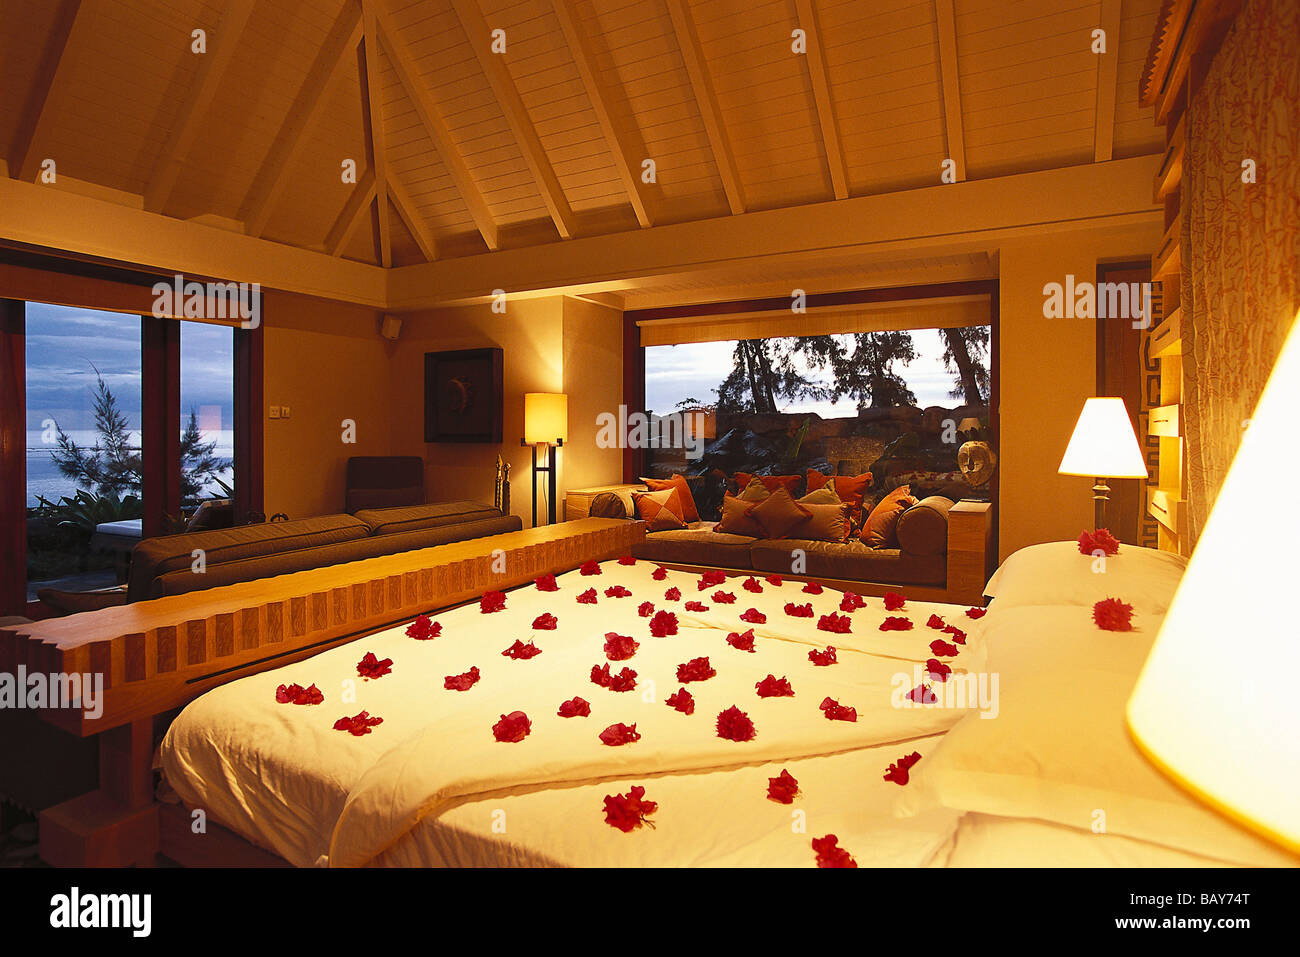 Royal Bedroom Stock Photos Amp Royal Bedroom Stock Images Alamy